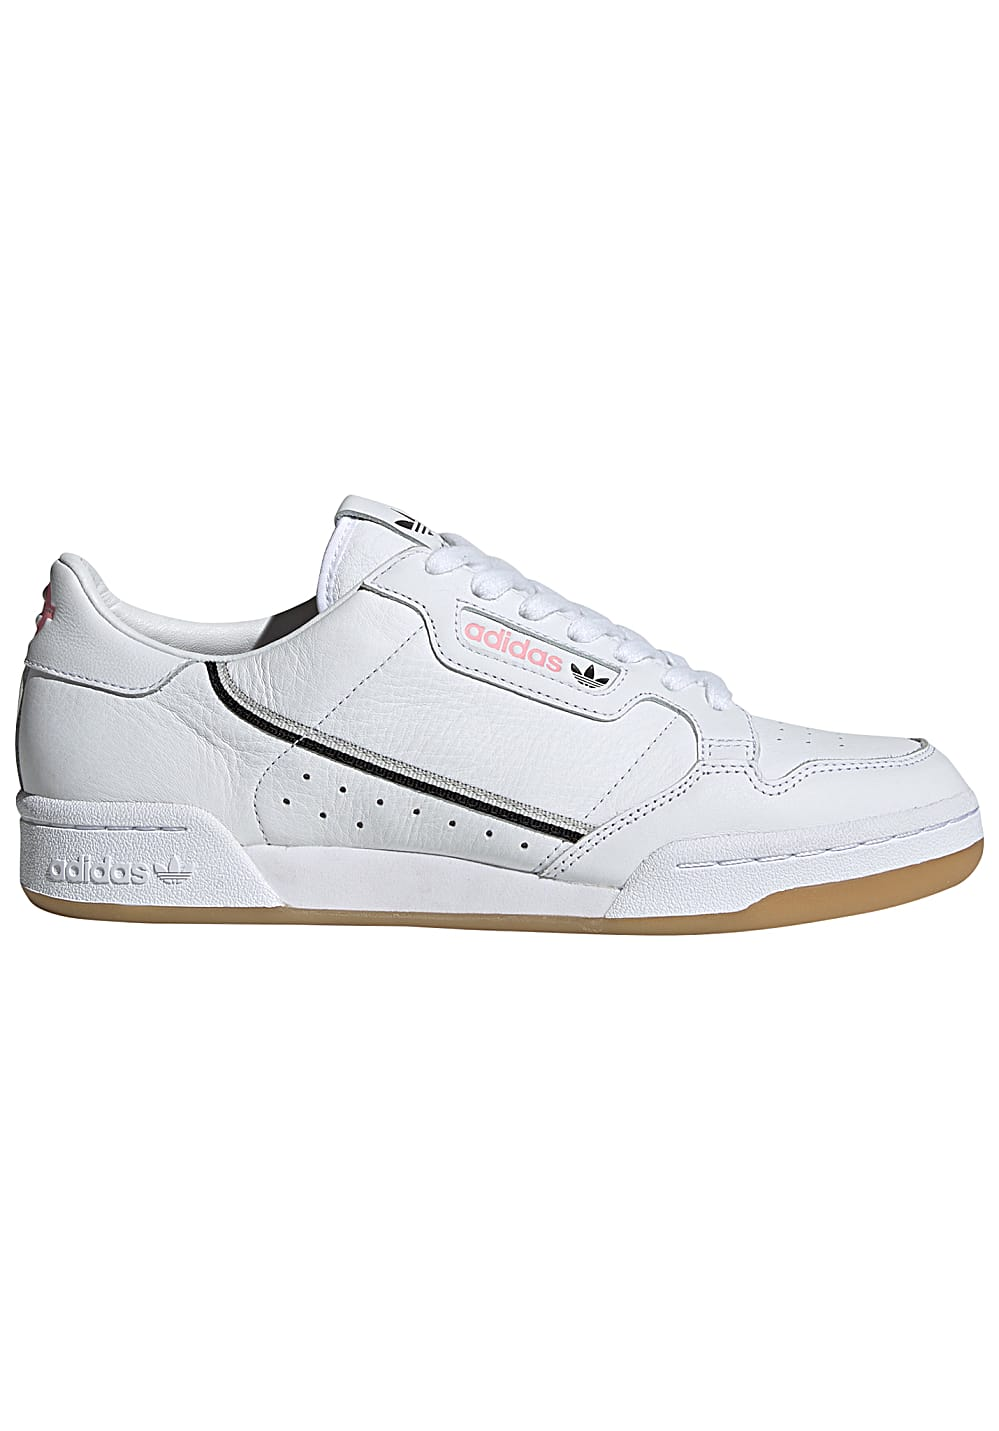 on sale 560c4 0184c ADIDAS ORIGINALS X TFL Continental 80 - Sneakers for Men - White